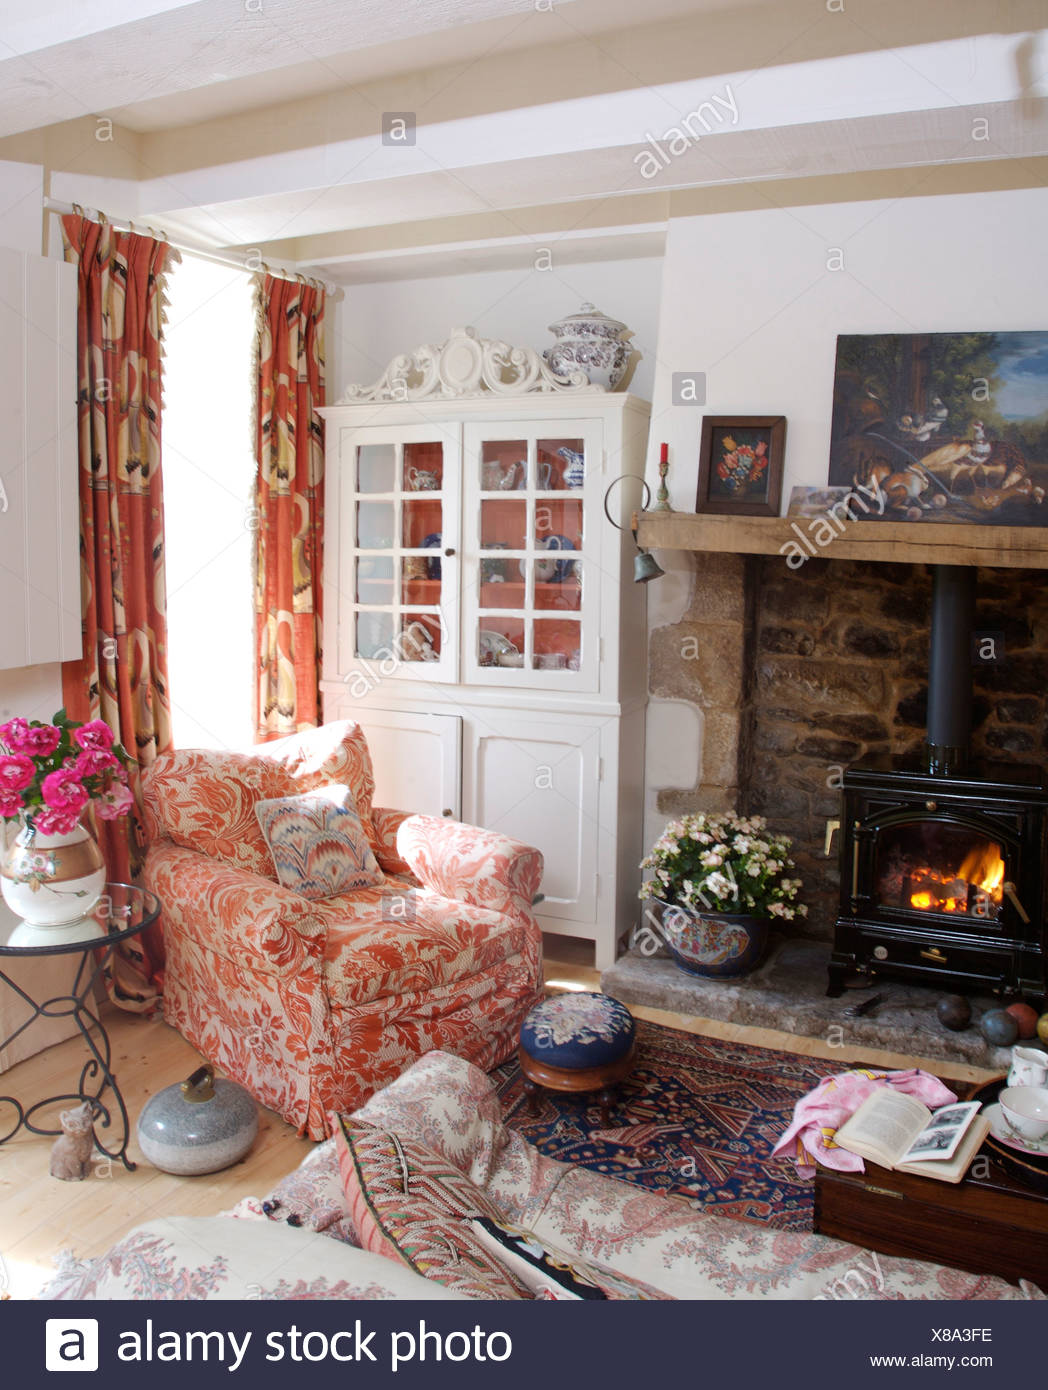 French Country Fireplace Pink White Armchair Beside Fireplace With Wood Burning Stove In